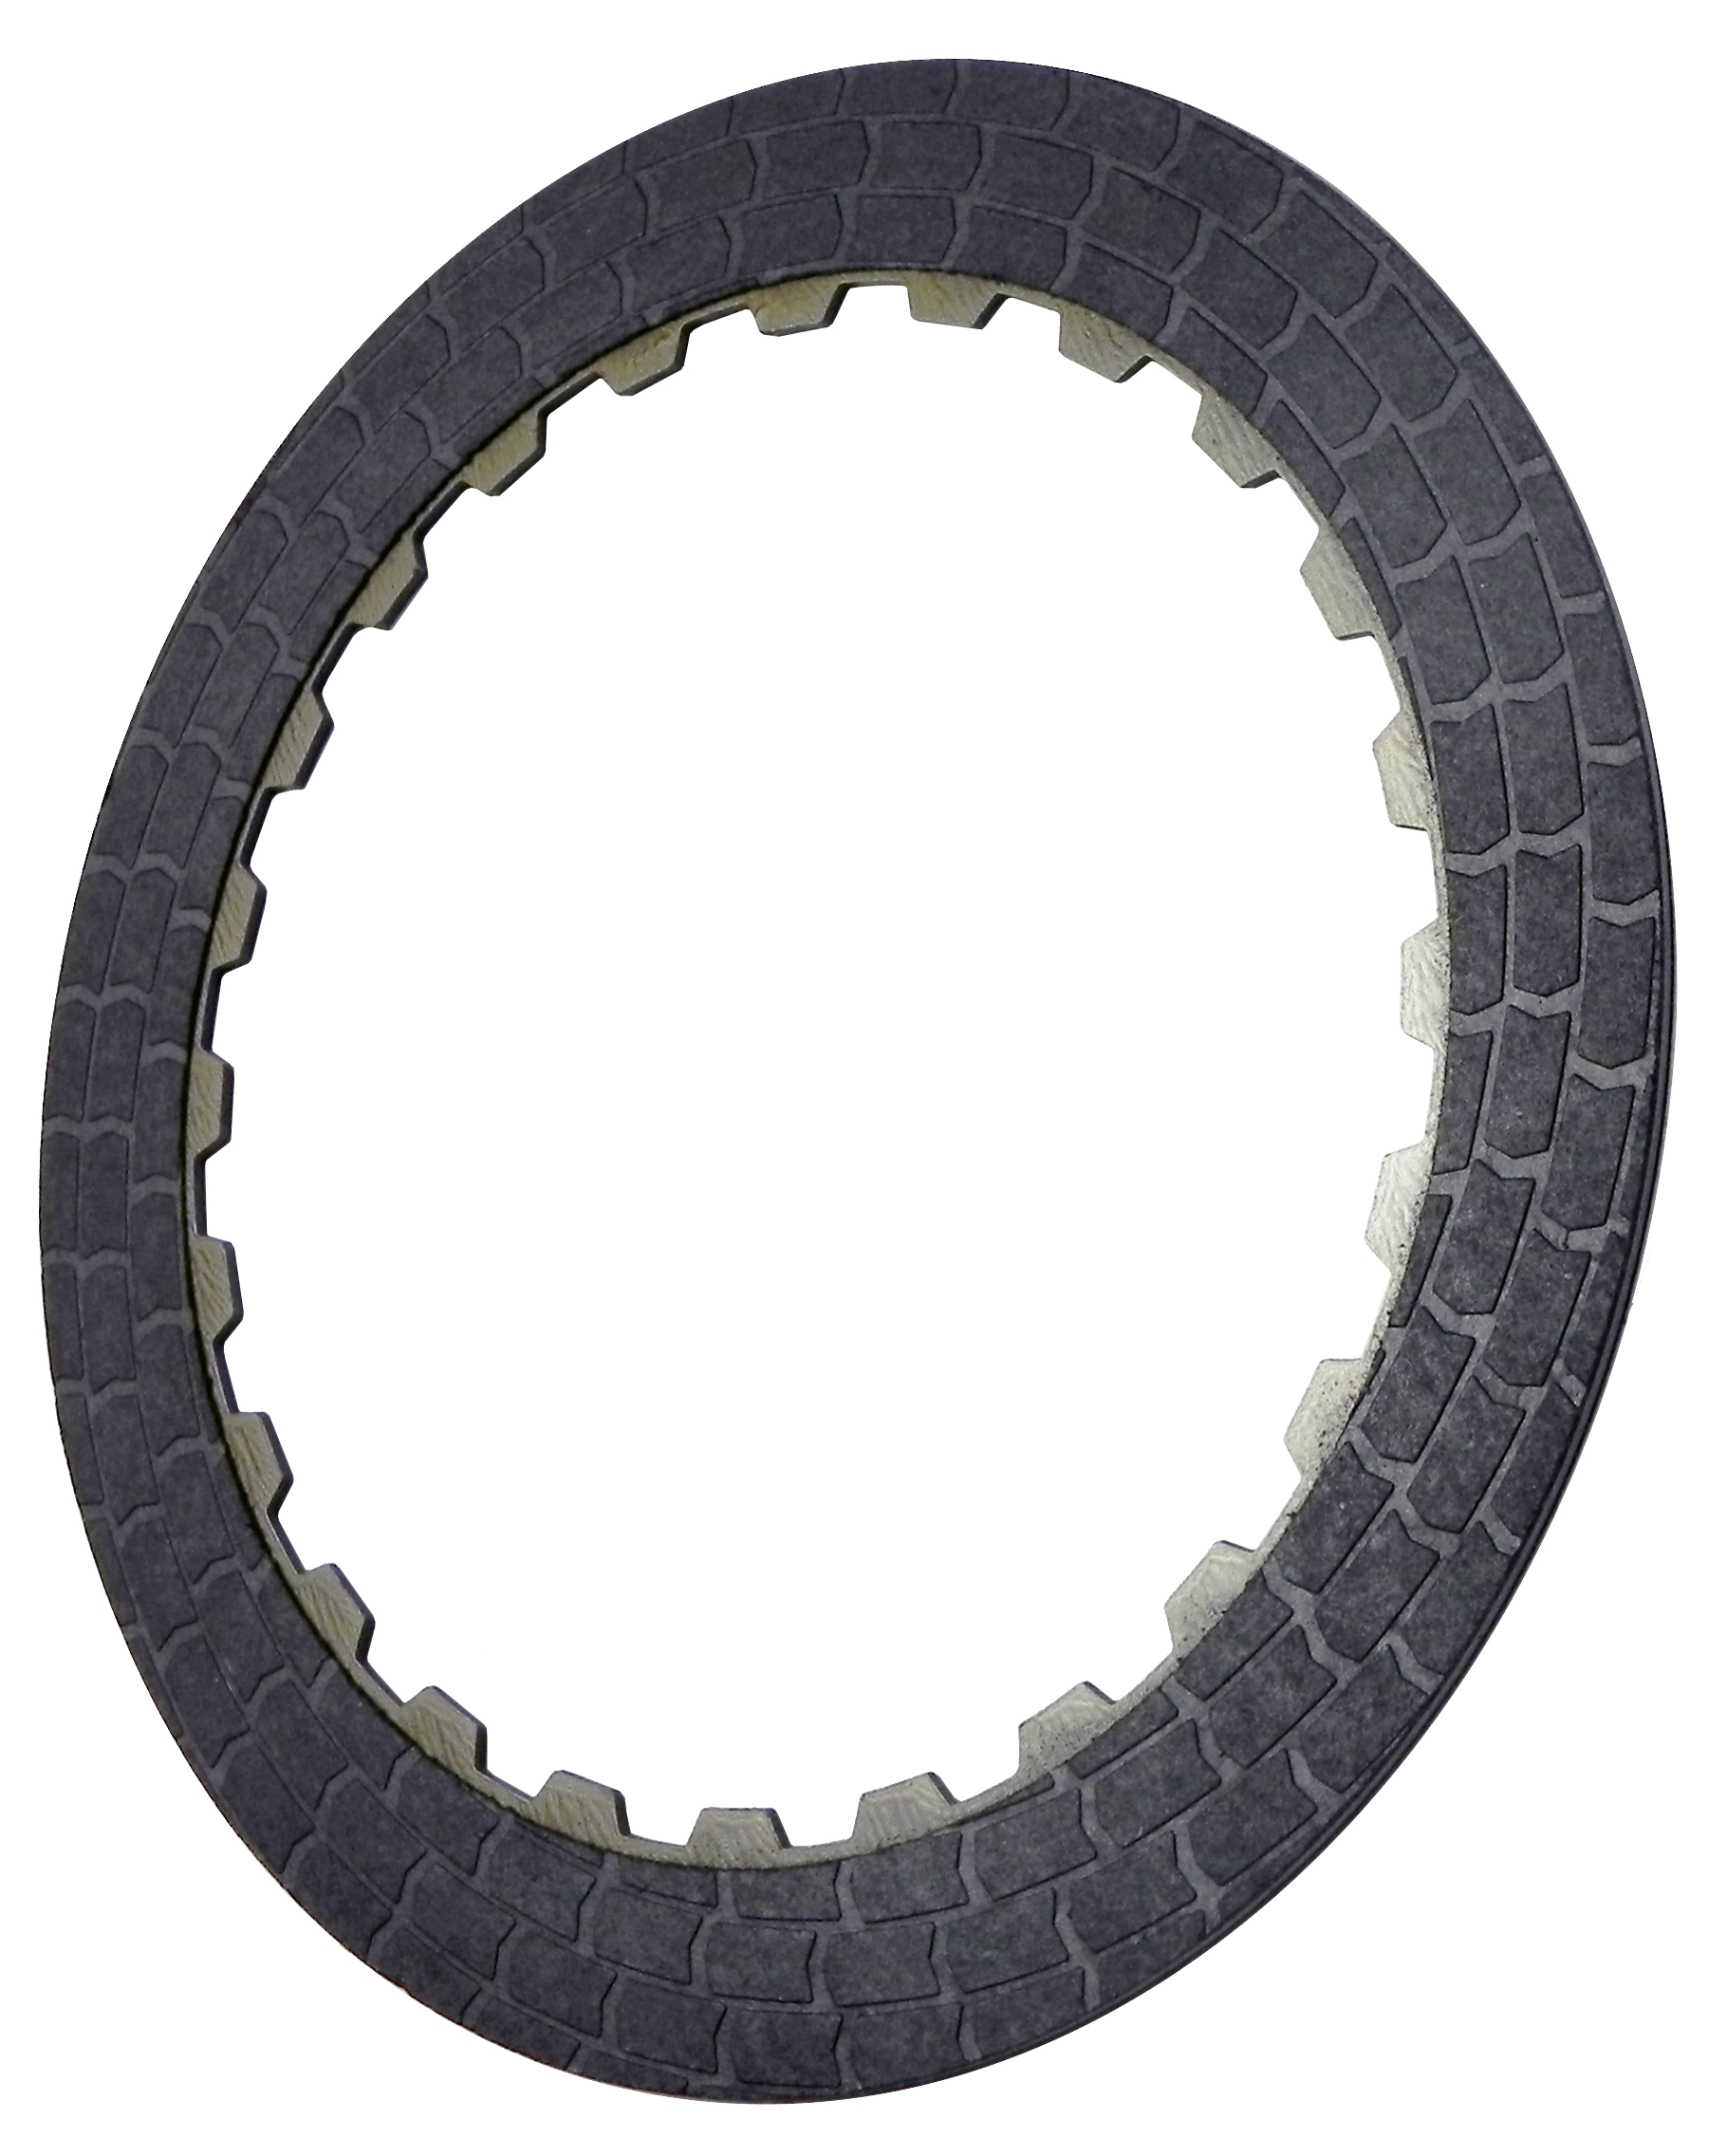 RH564005 | 1996-ON Friction Clutch Plate (HT) Hybrid Technology Direct Proprietary High Energy (HT)